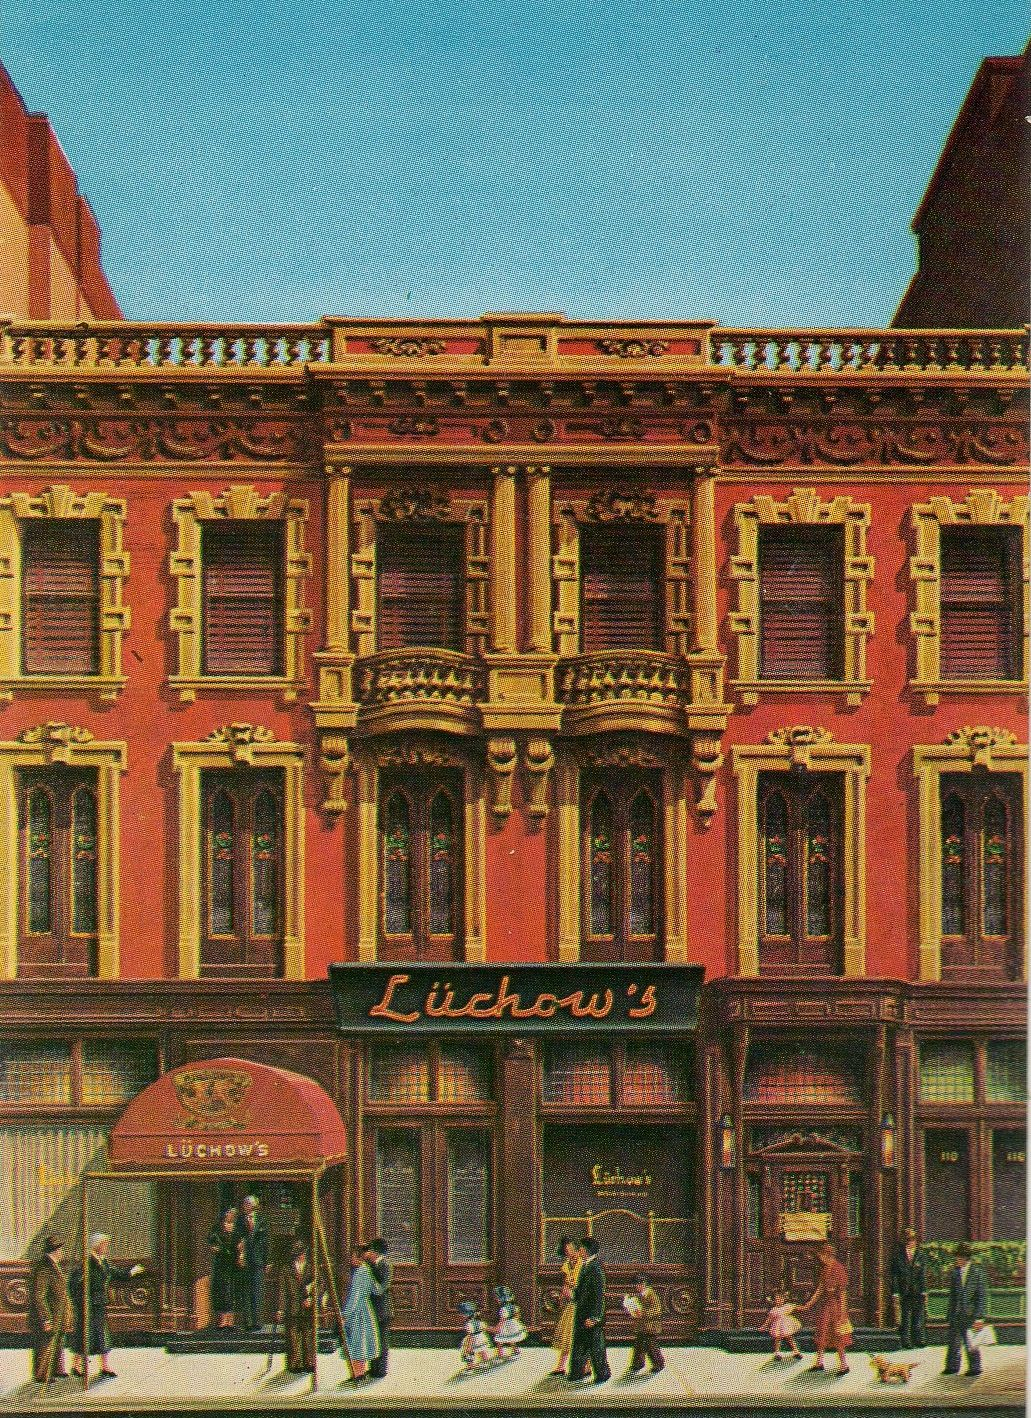 Legendary Lüchow's On East 14th Street